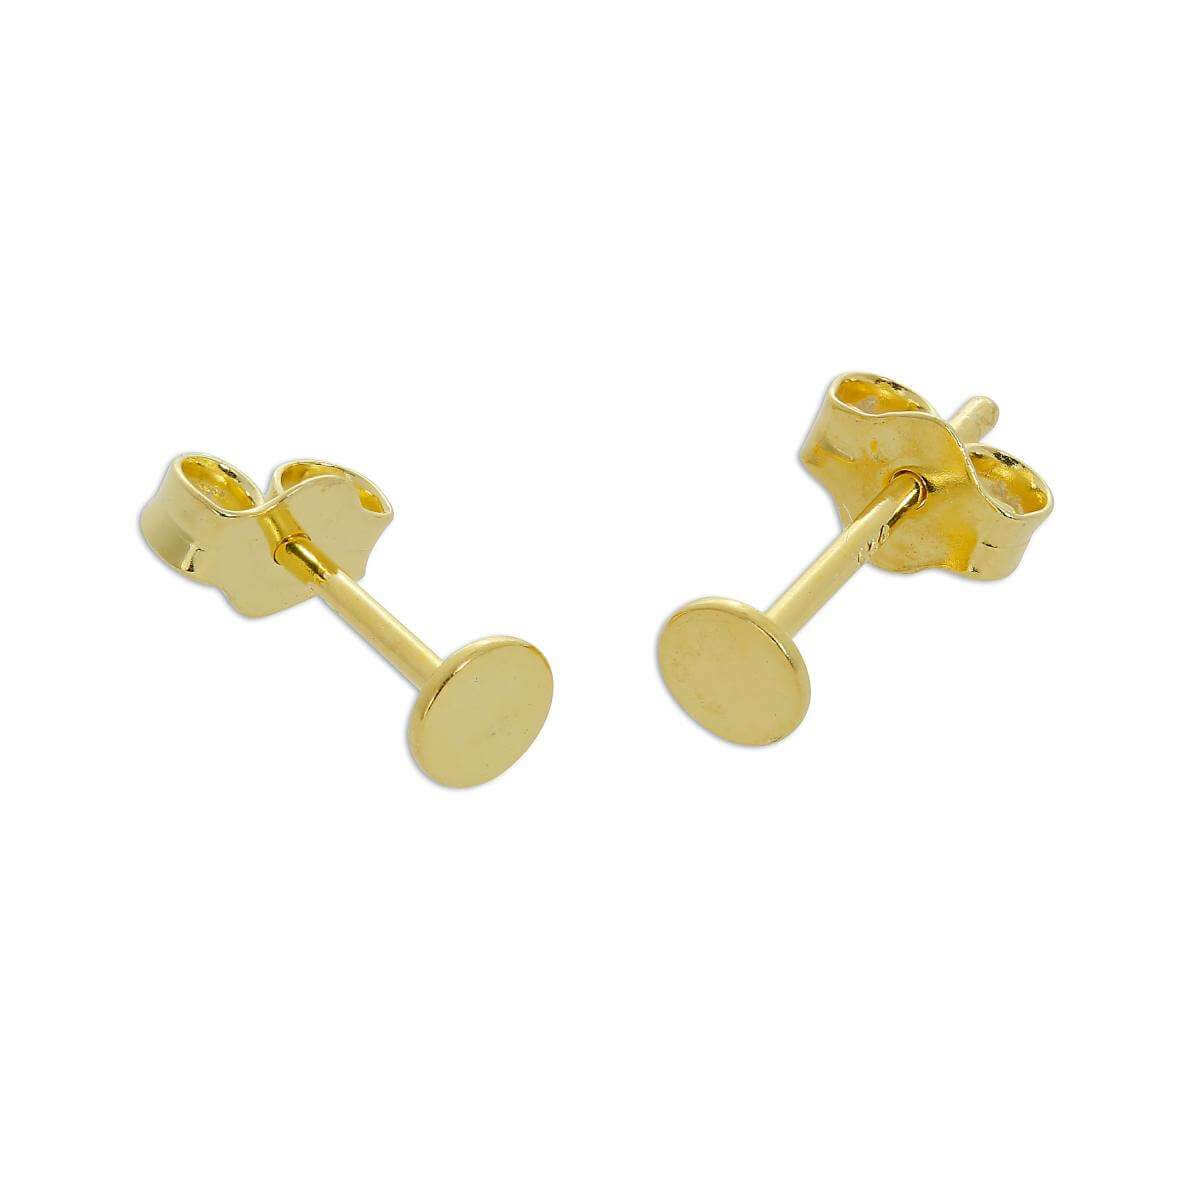 Gold Plated Sterling Silver Flat Circle Stud Earrings